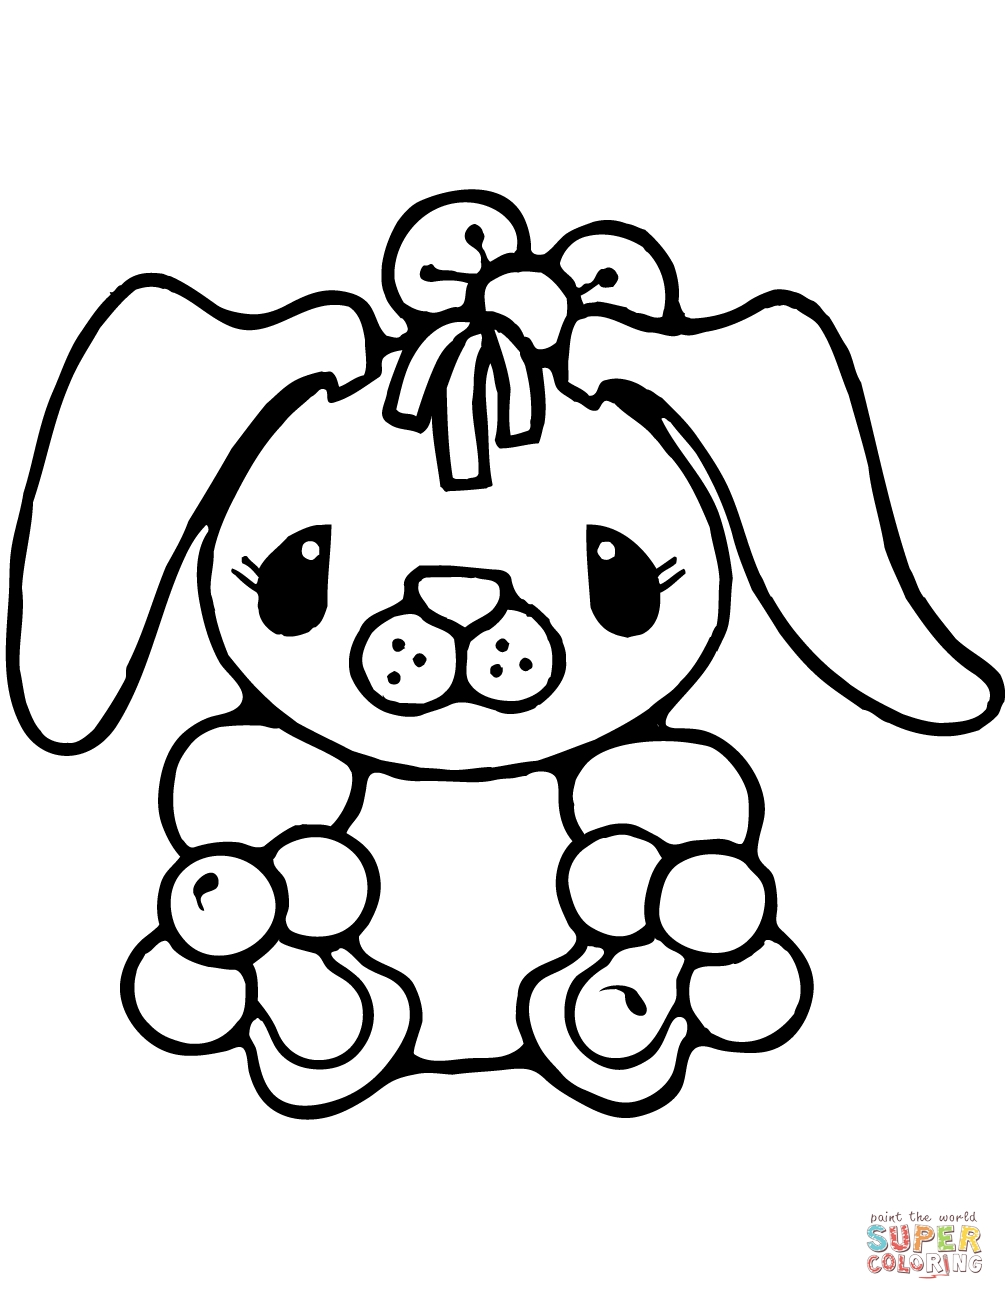 rabbit coloring pages - printable coloring pages bunny rabbits